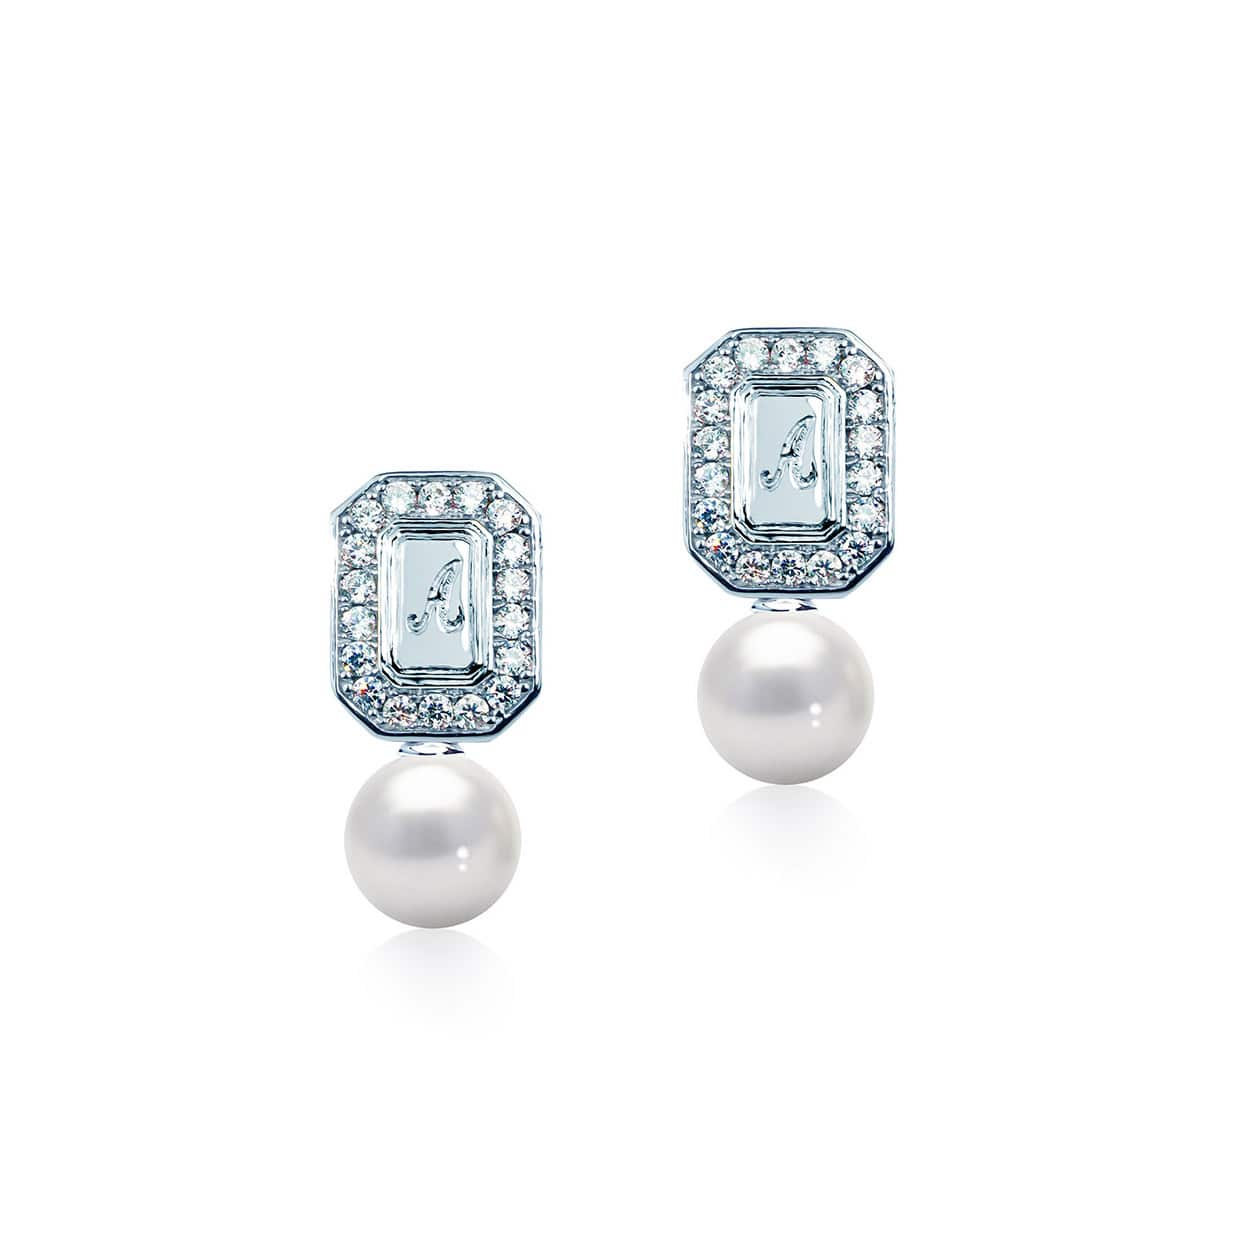 Abelstedt A Silver Freshwater Pearl Earrings - Abelstedt